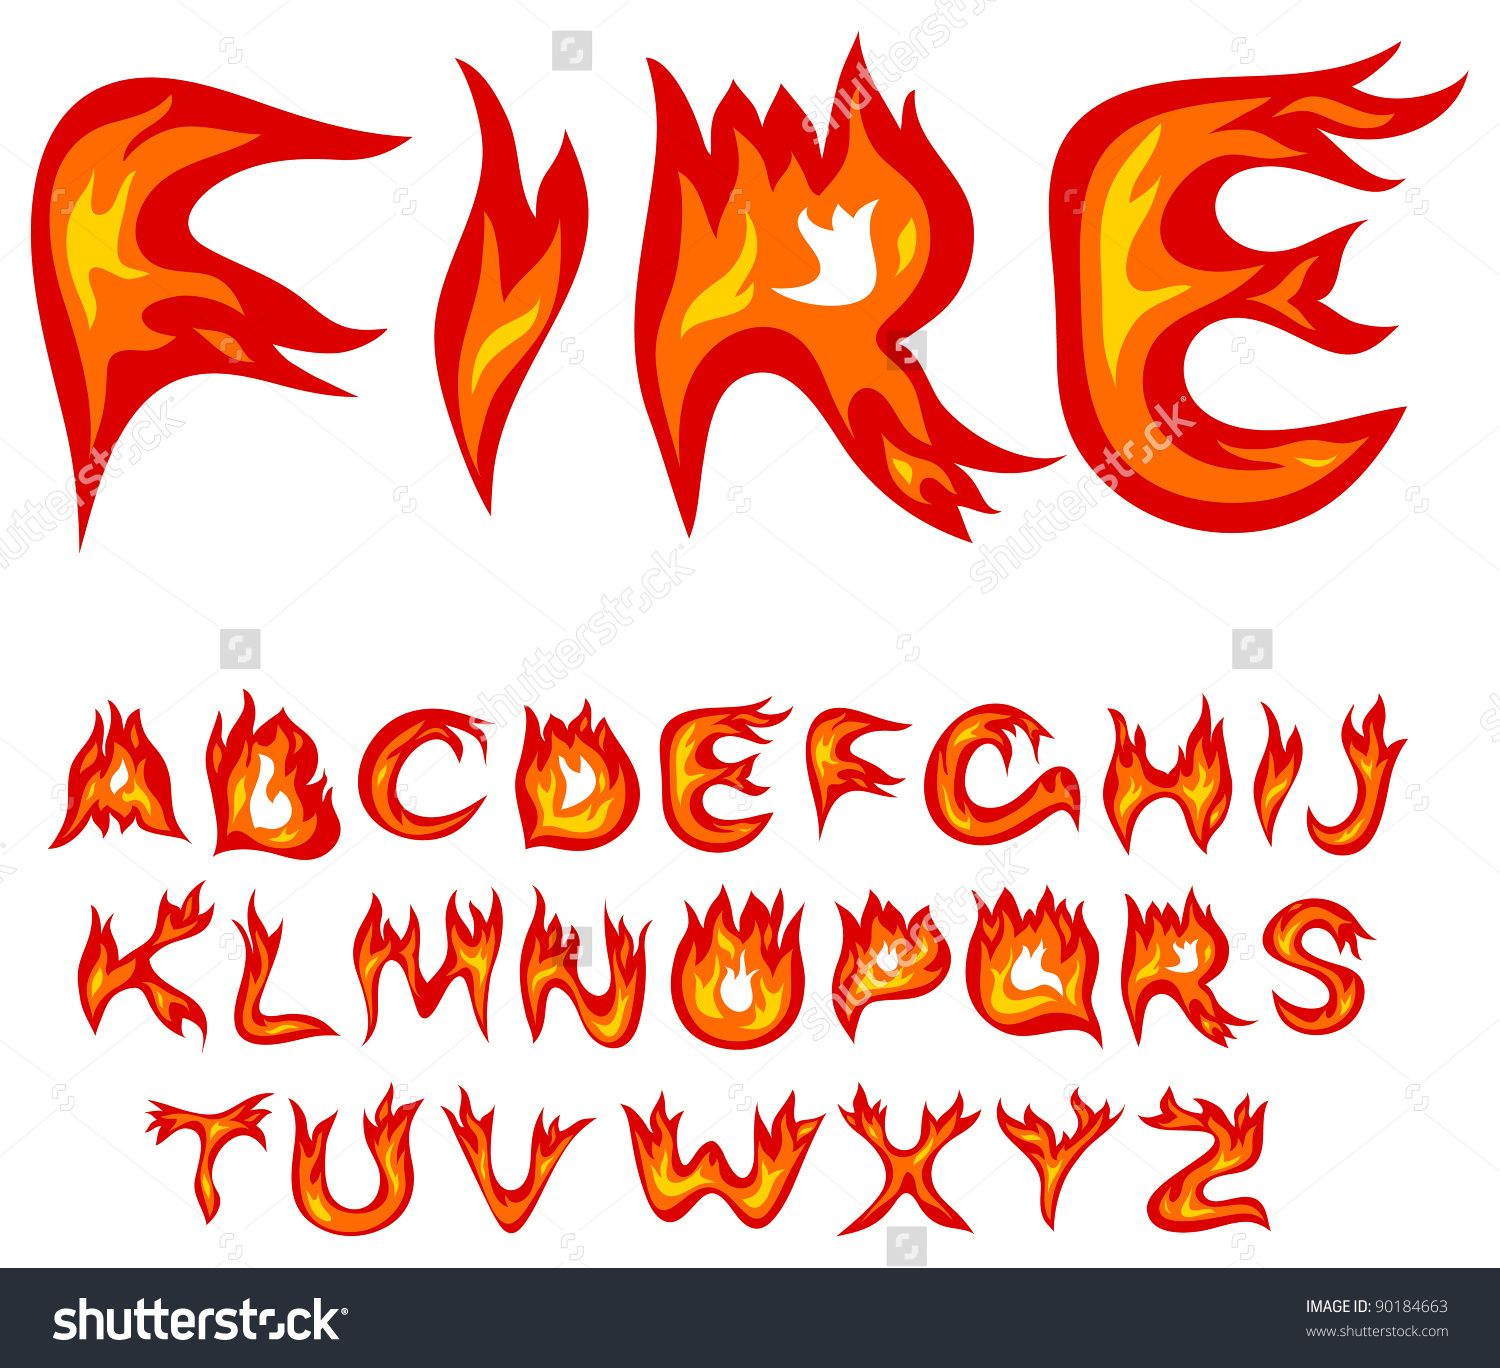 letters as flames vector.